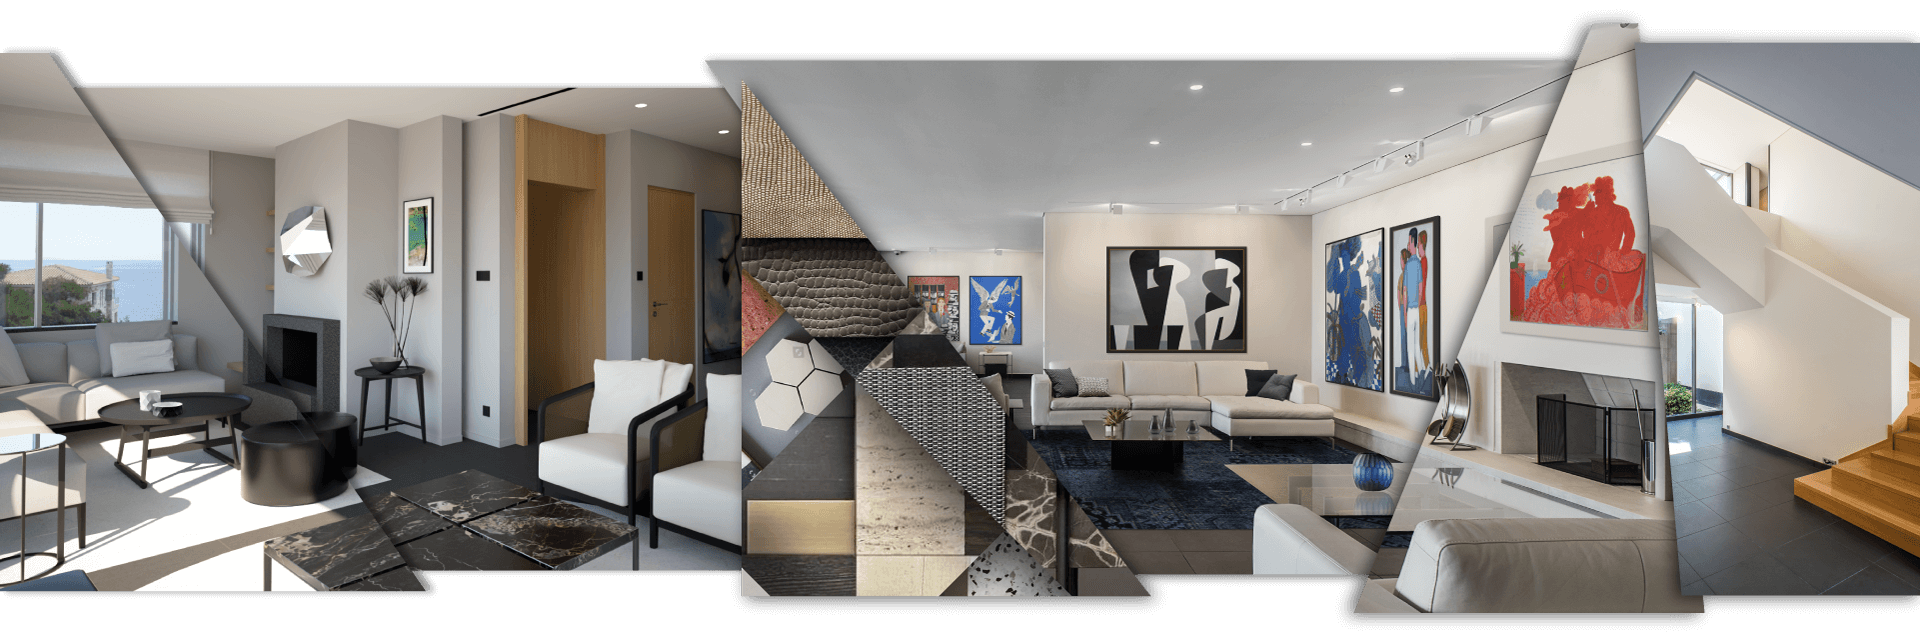 Interior design services in Cyprus - various contemporary and luxury residential interiors designed by Reform.